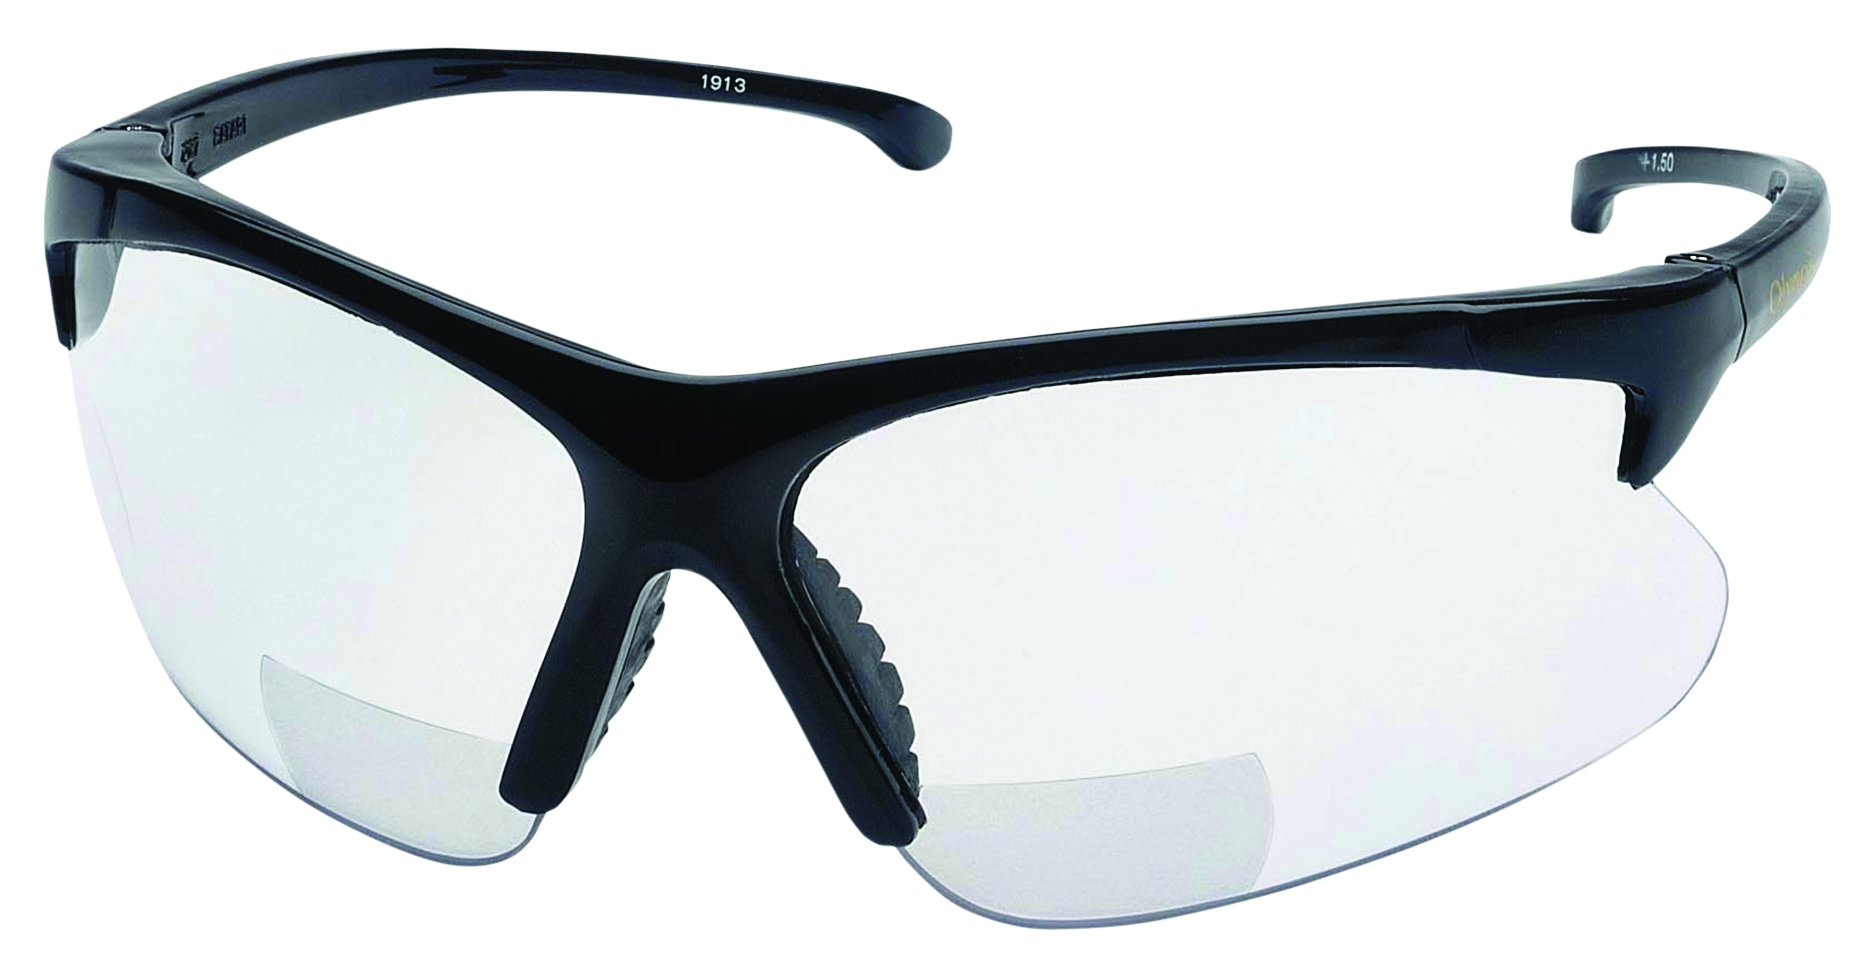 19876 - KleenGuard™ 30-06* Readers Safety Glasses-KleenGuard™ 30-06* Readers Eyewear, Clear +1.0 Diopter Lens, Black Frames-----UOM: 1/EA